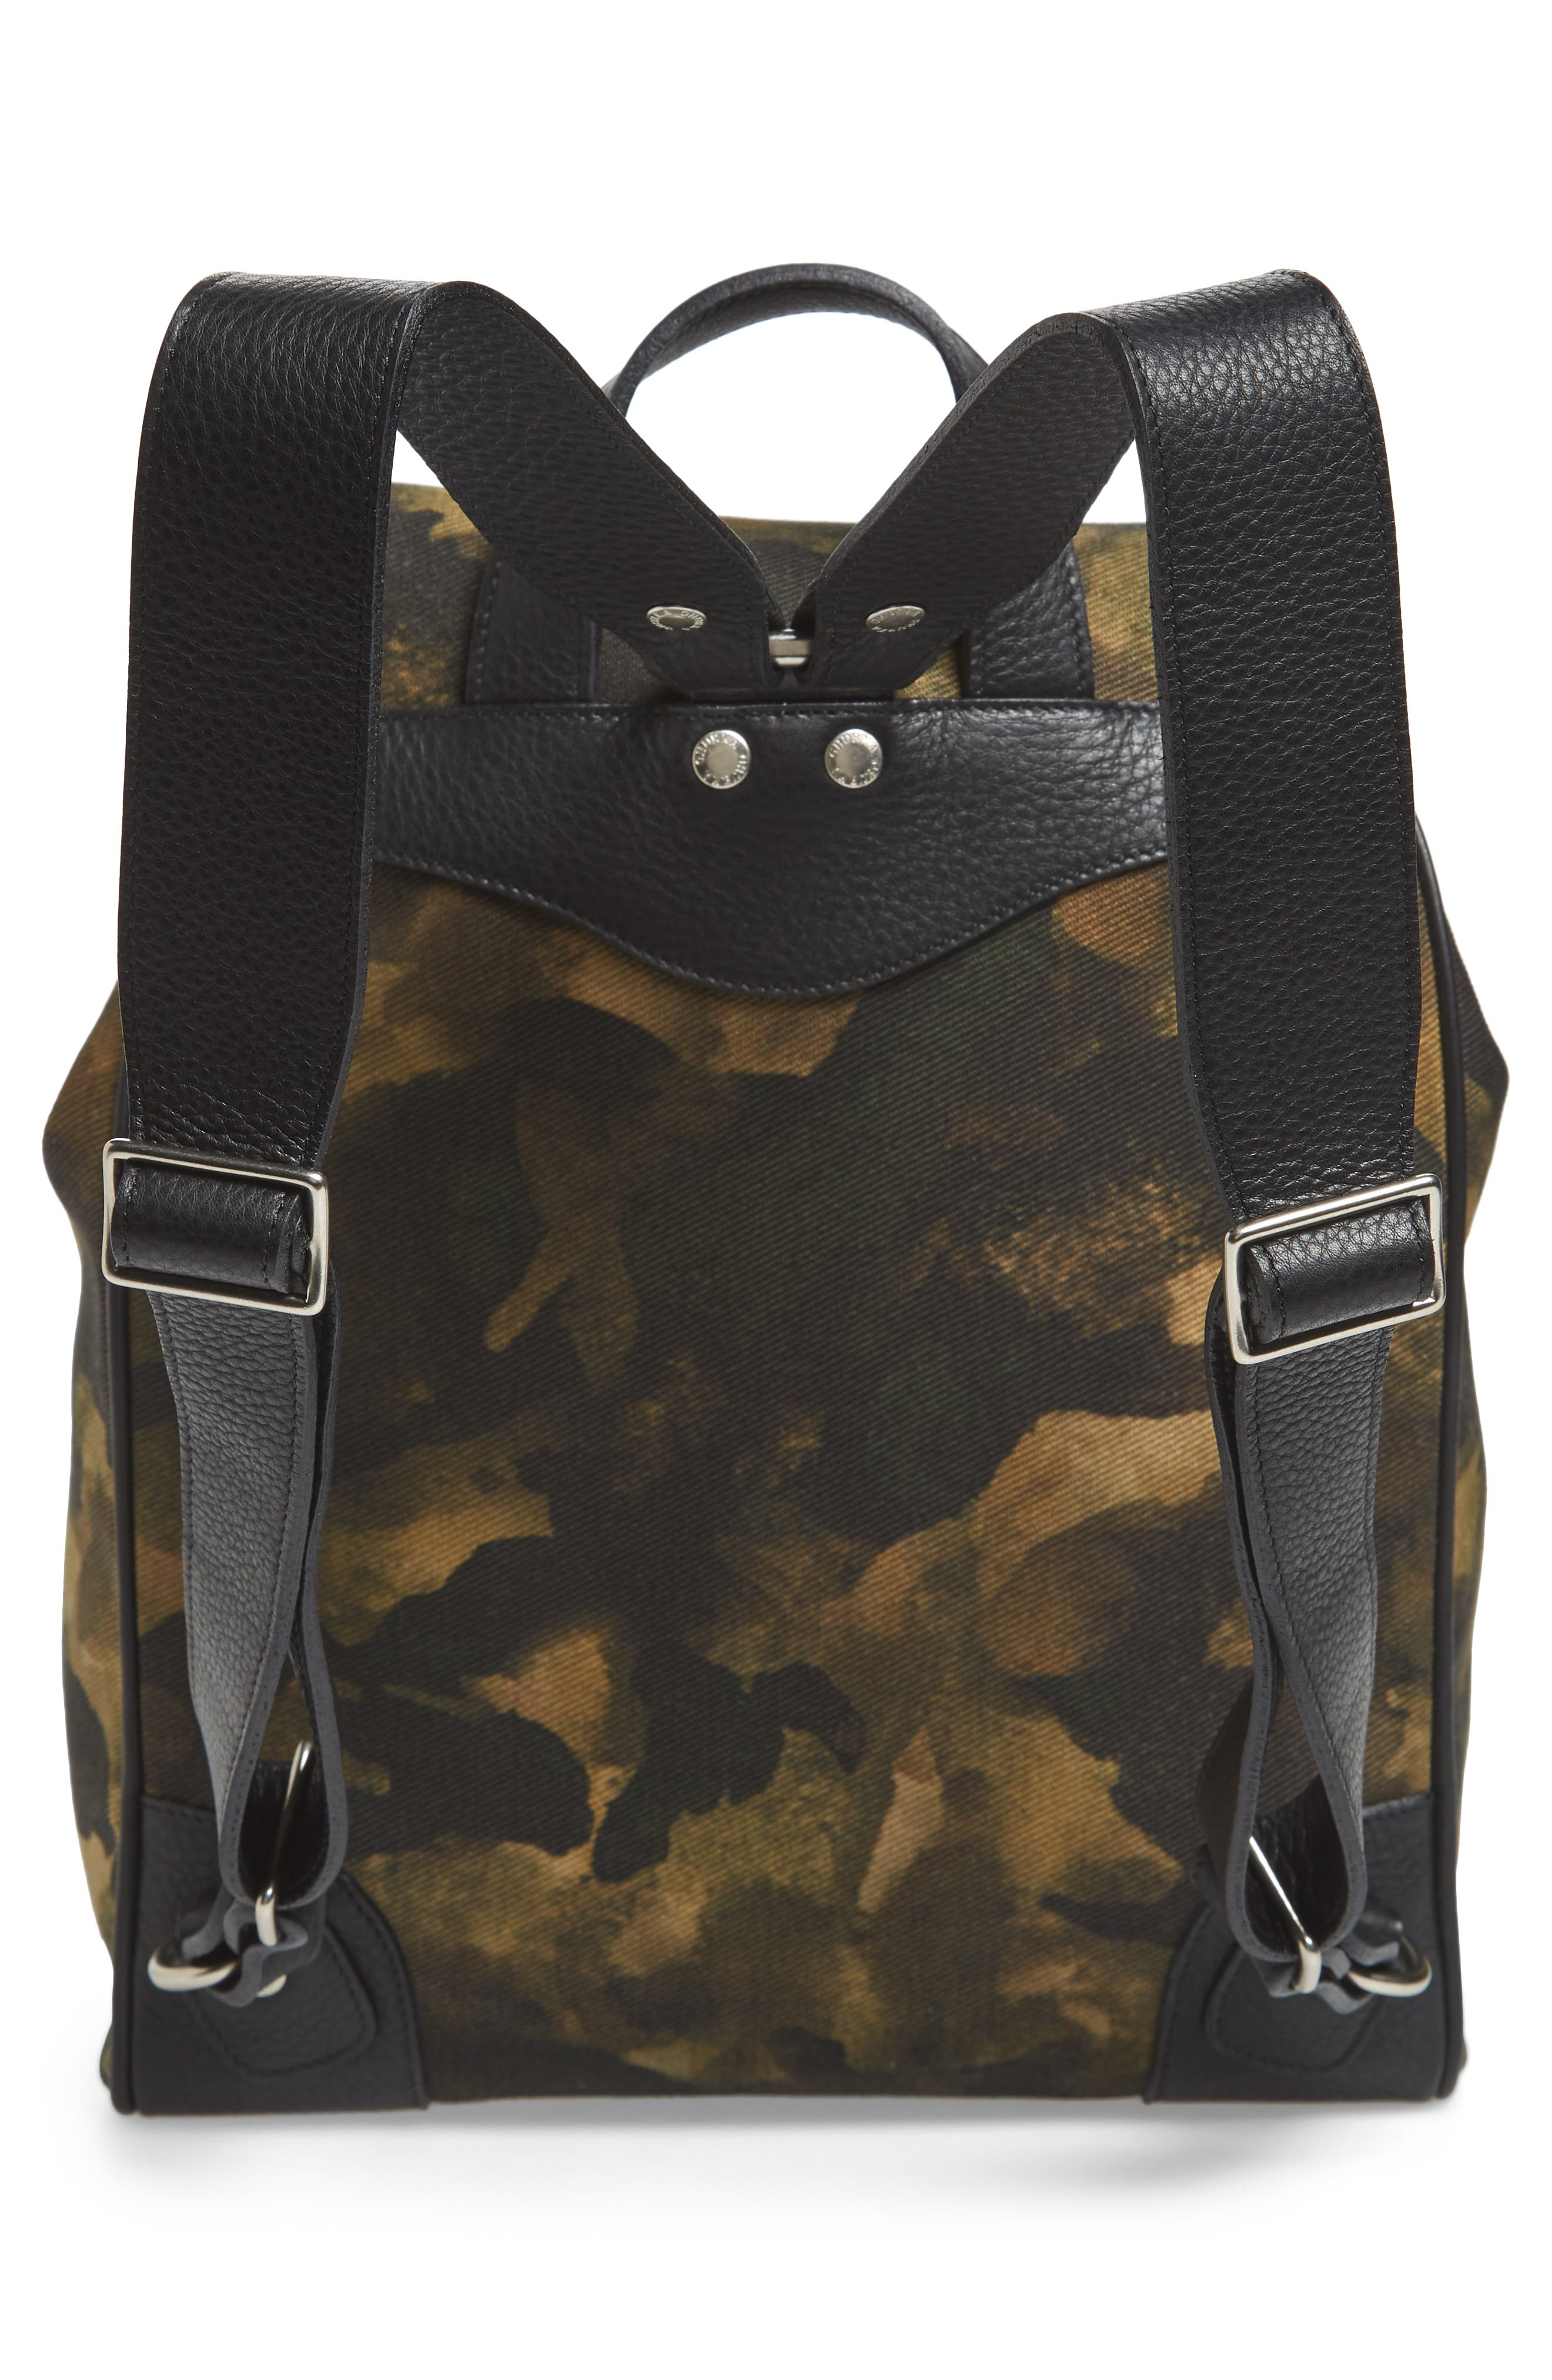 Blazer Canvas Backpack,                             Alternate thumbnail 3, color,                             Camo Solid